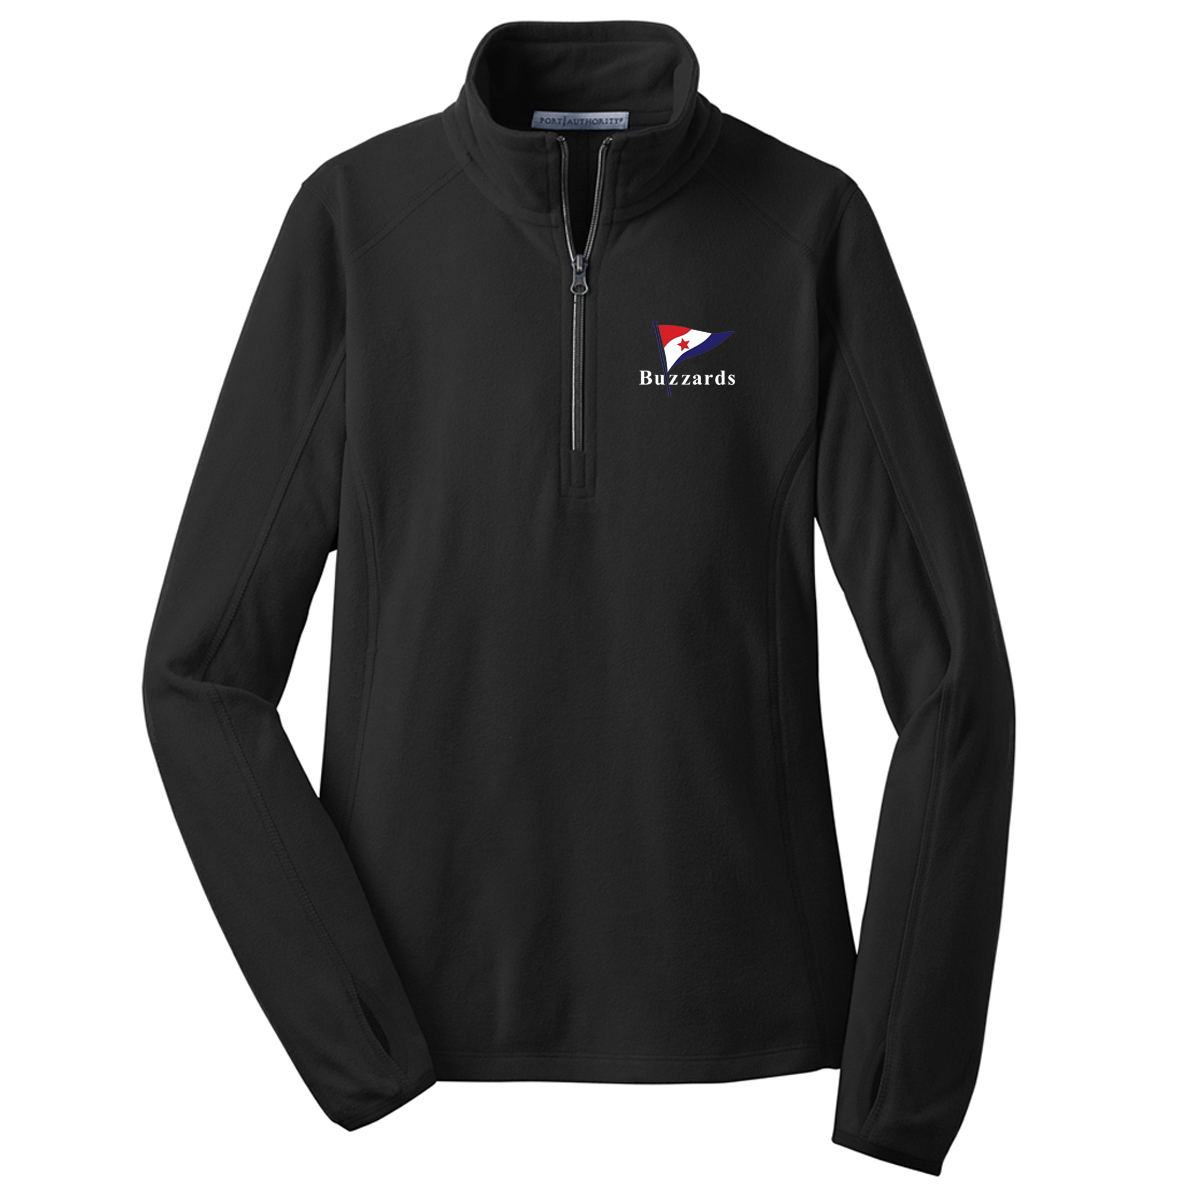 Buzzards Yacht Club - Women's Fleece Pullover (BUZ502)